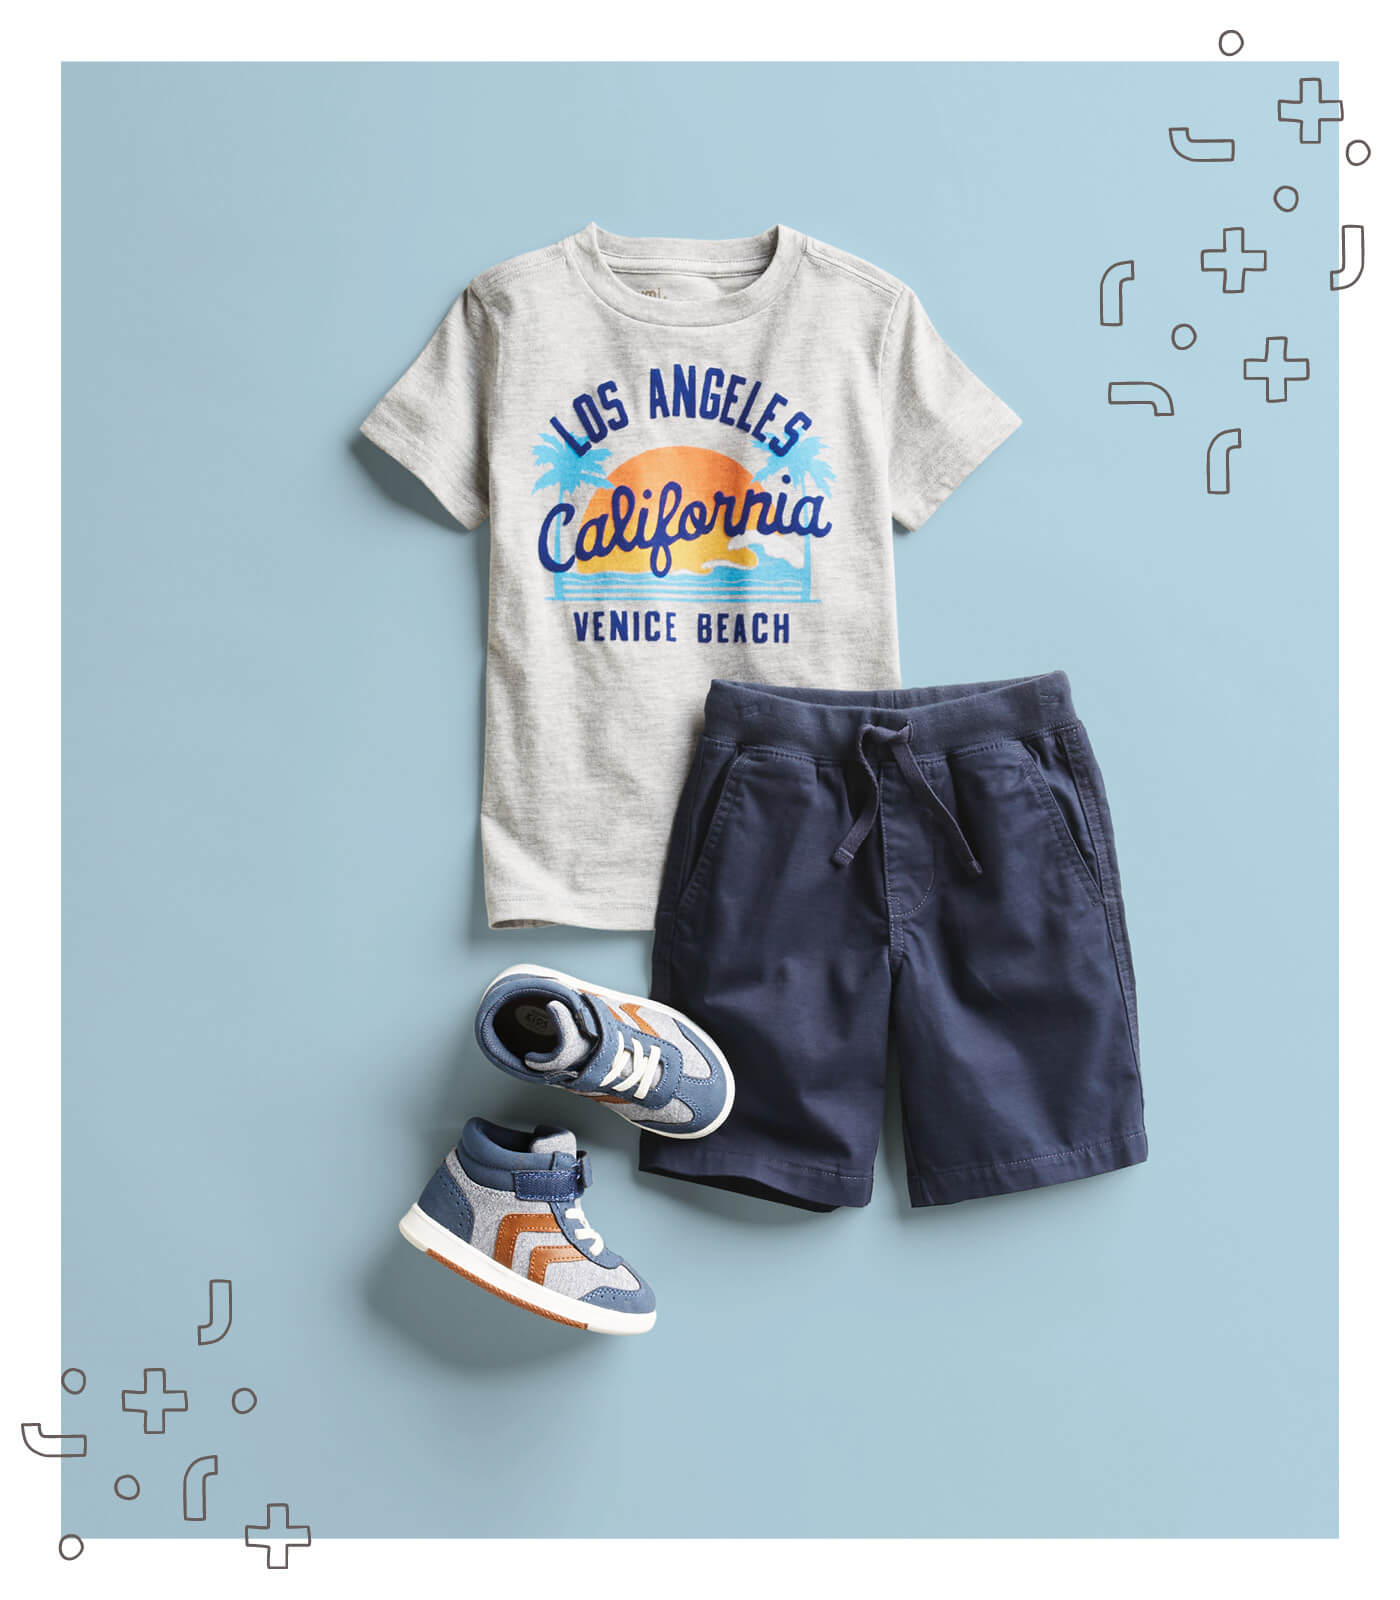 kid's california t-shirt and shorts